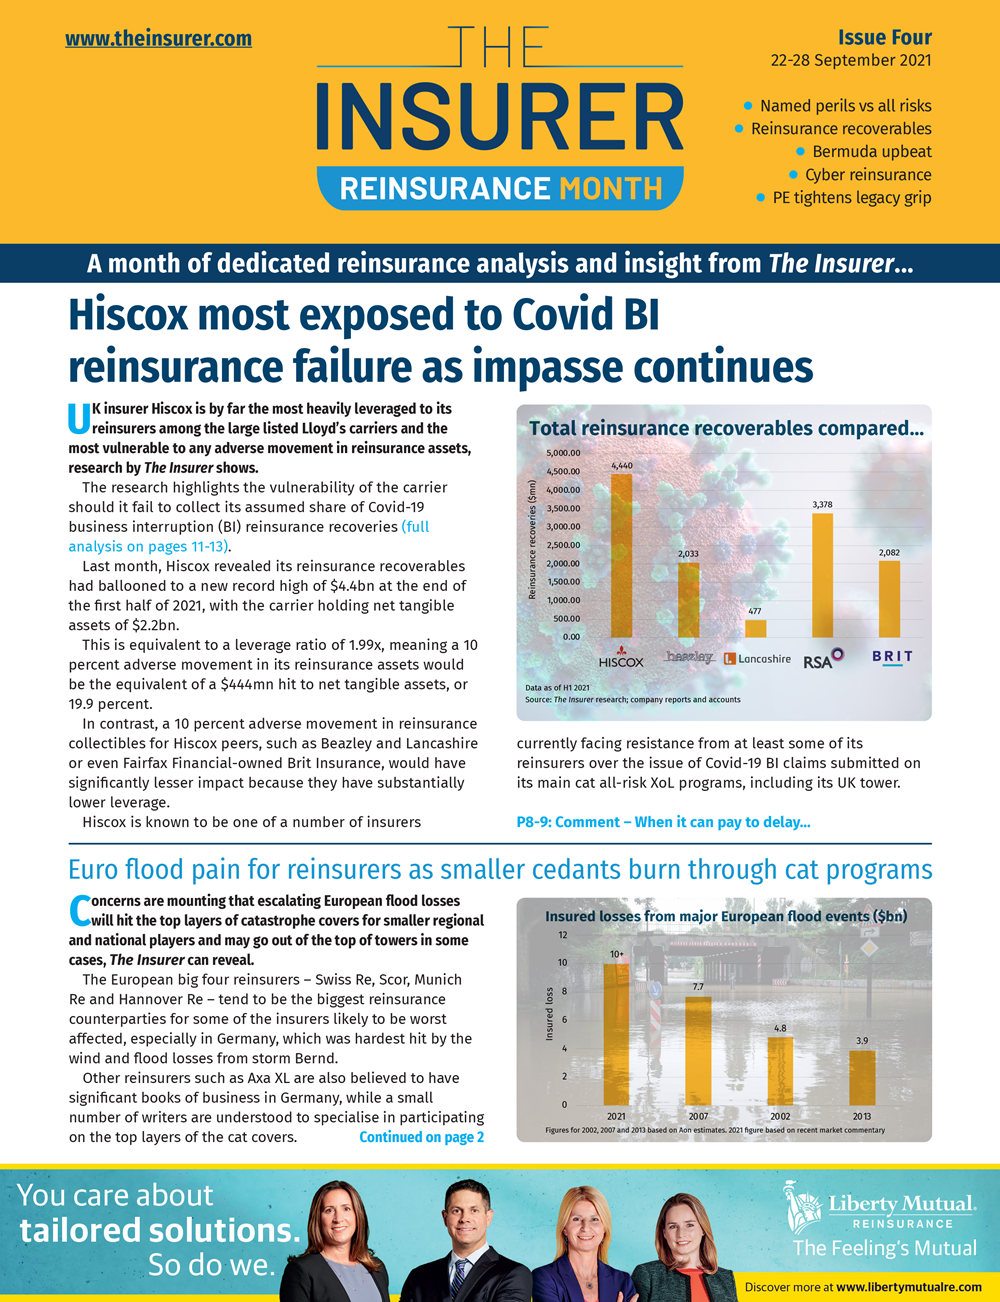 Reinsurance Month 2021: Issue Four